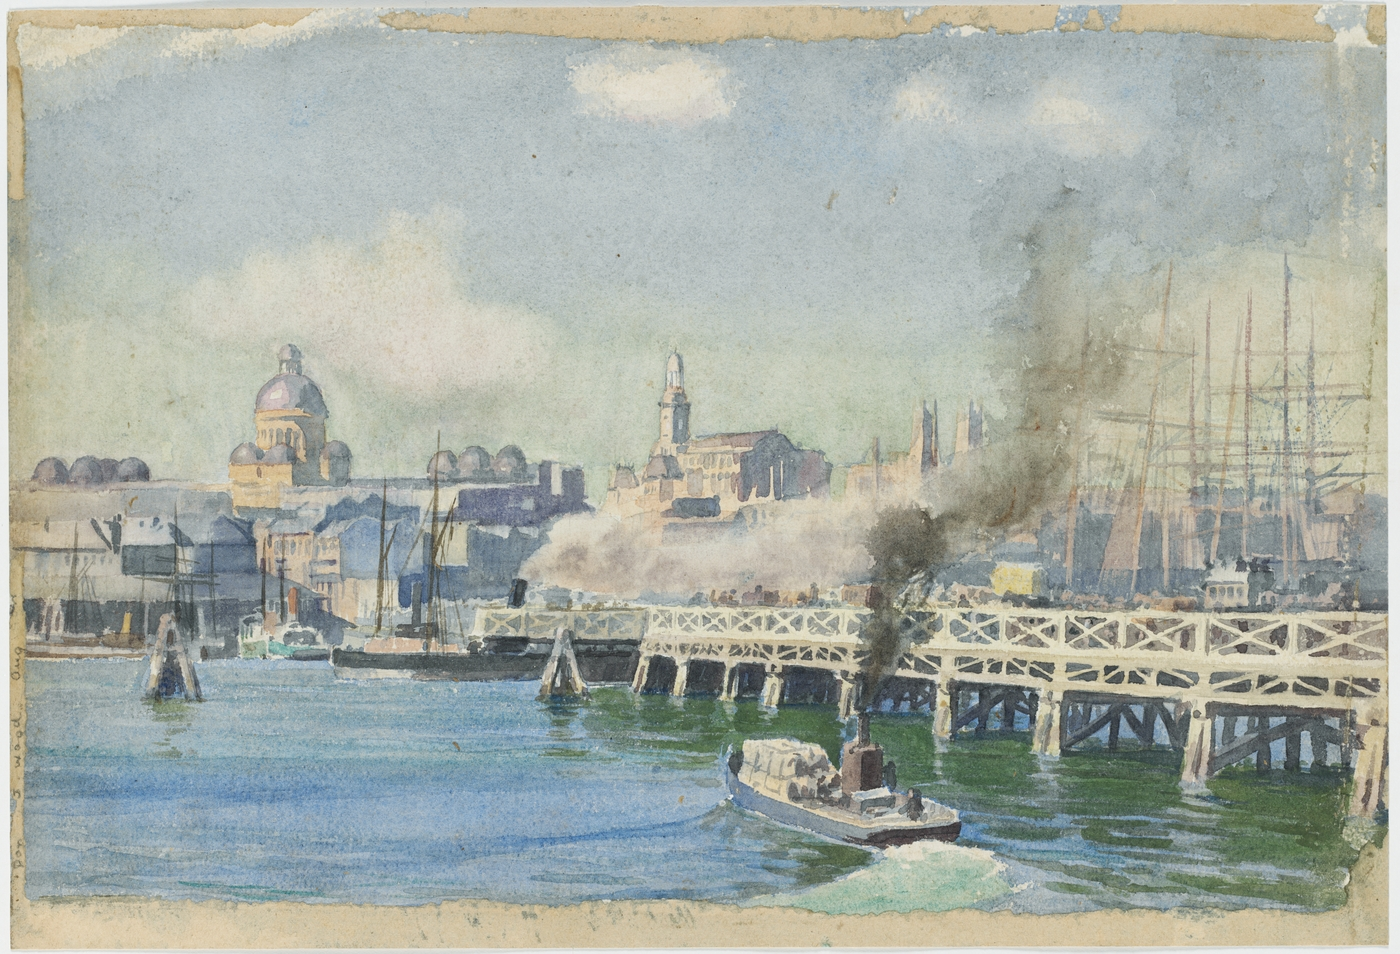 Pyrmont Bridge, c.1900 / G. Coutts